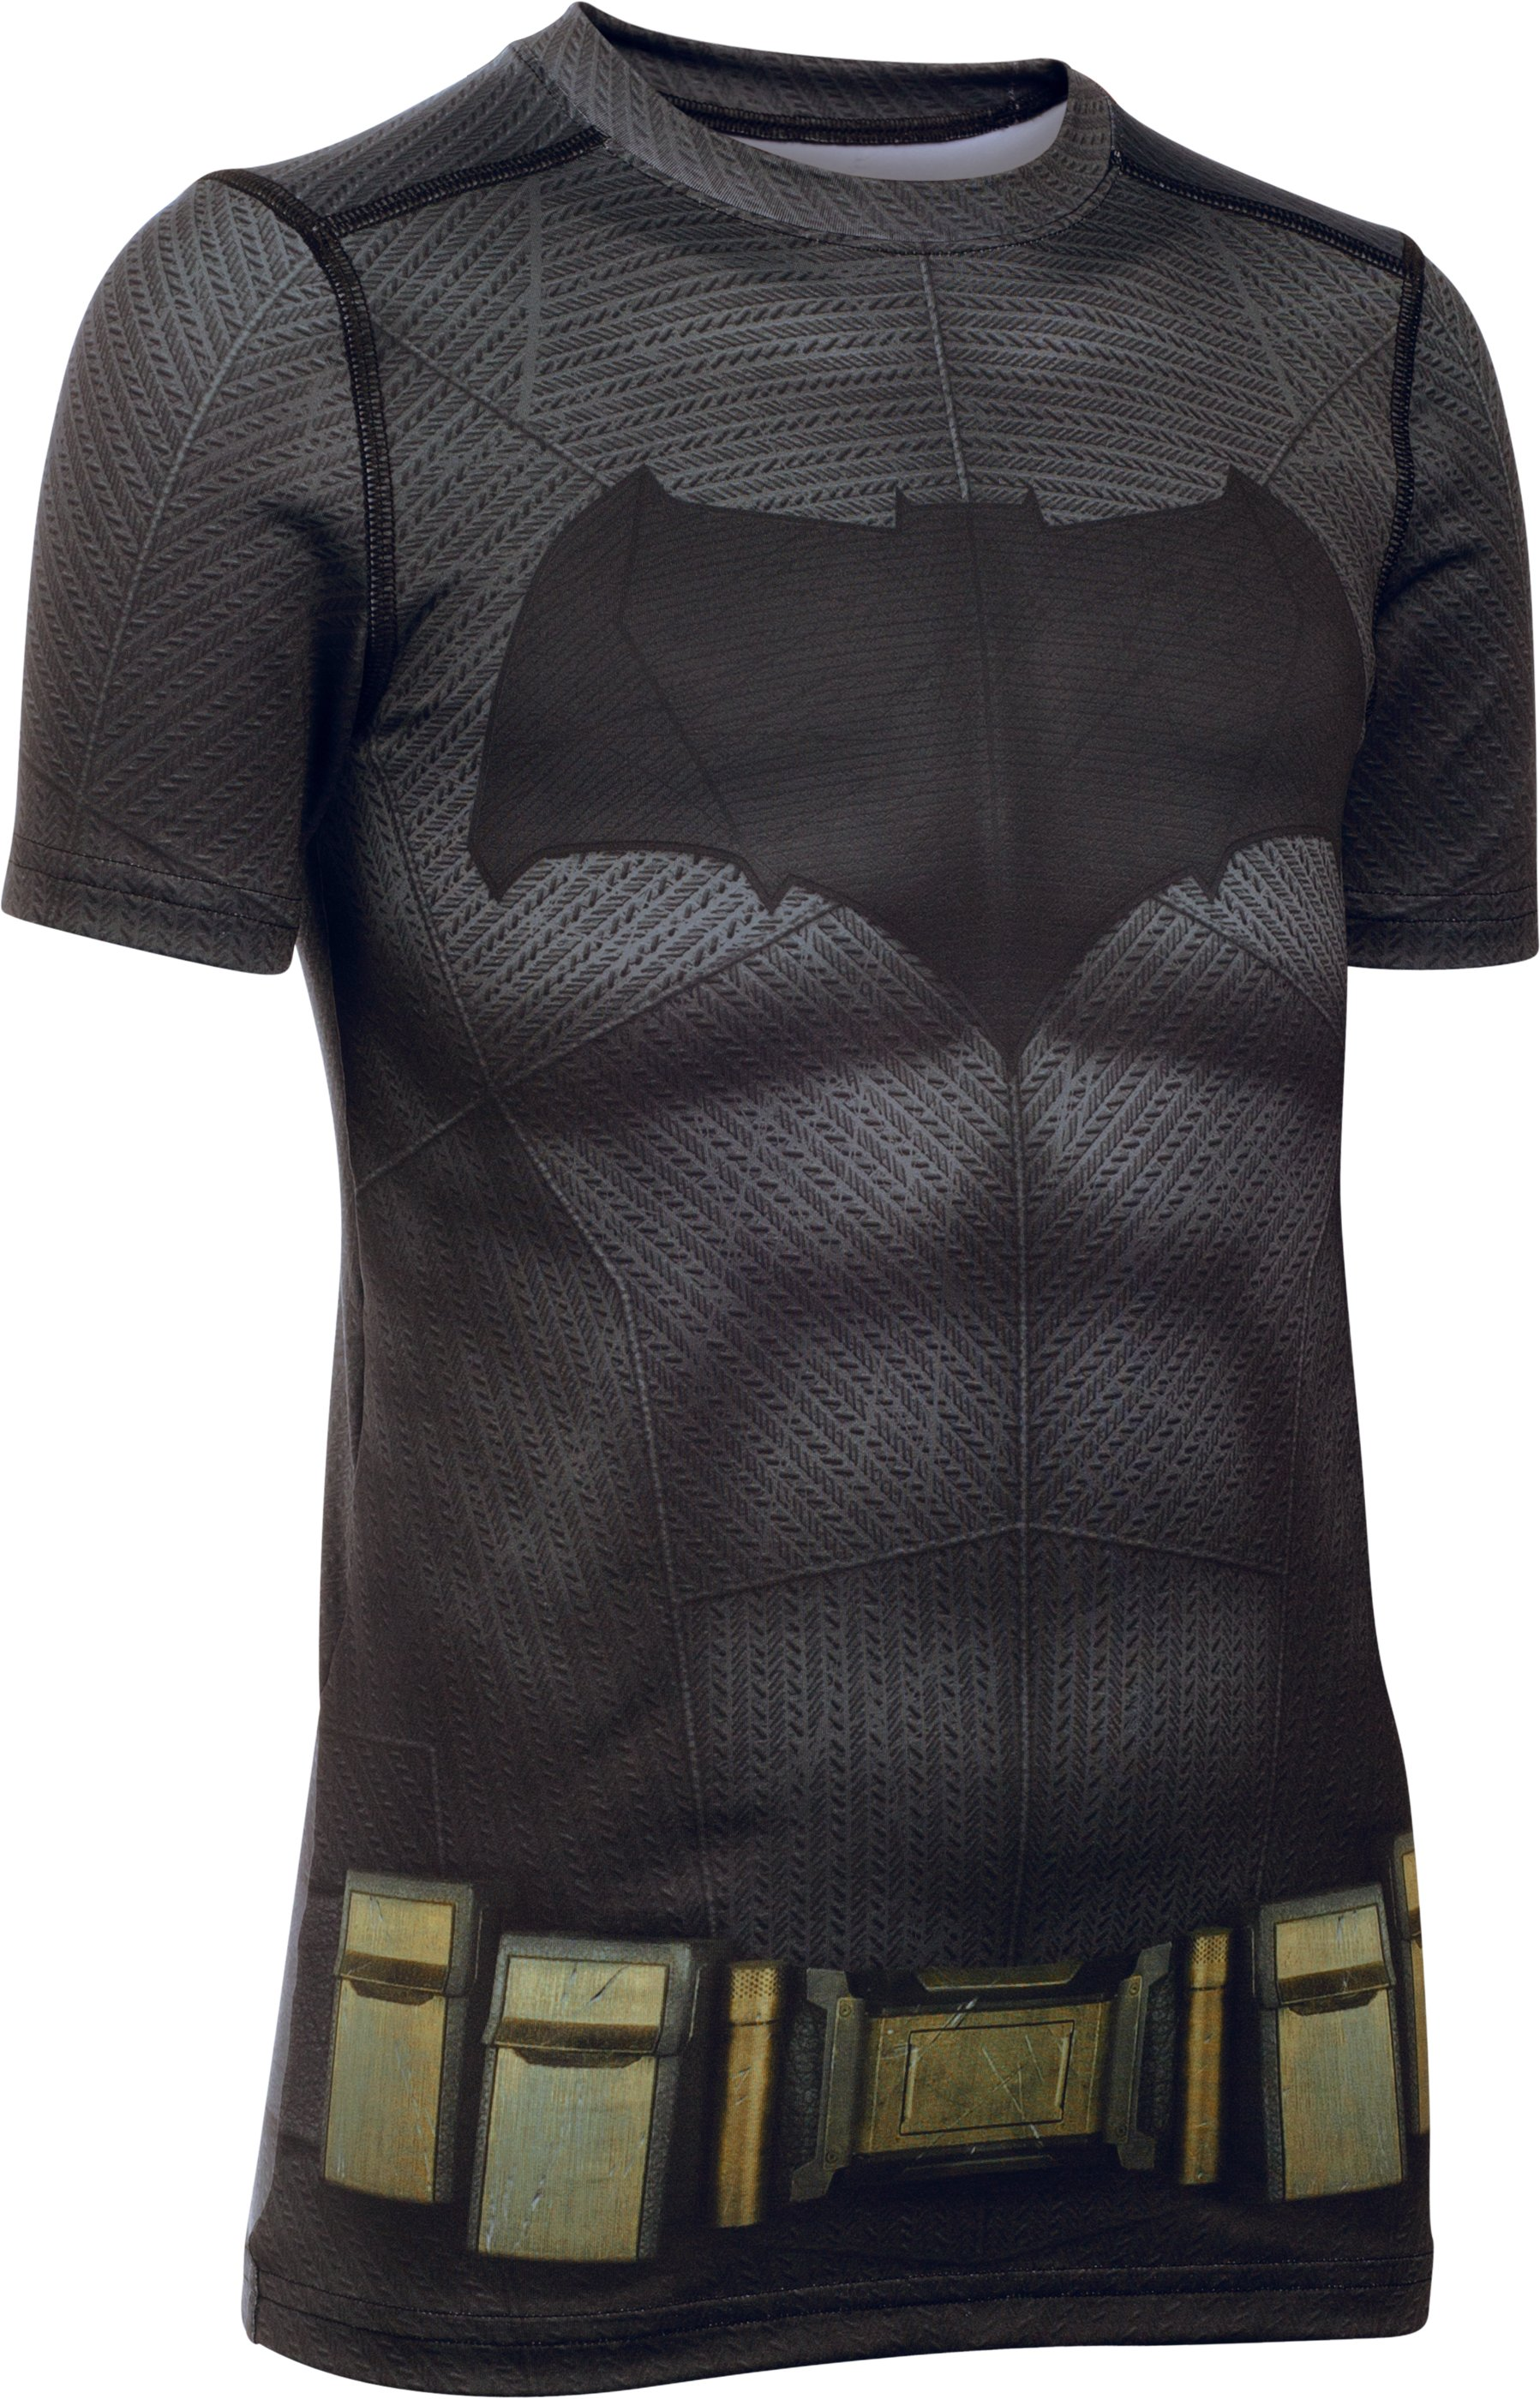 Boys' Under Armour® Batman Fitted Shirt, Graphite